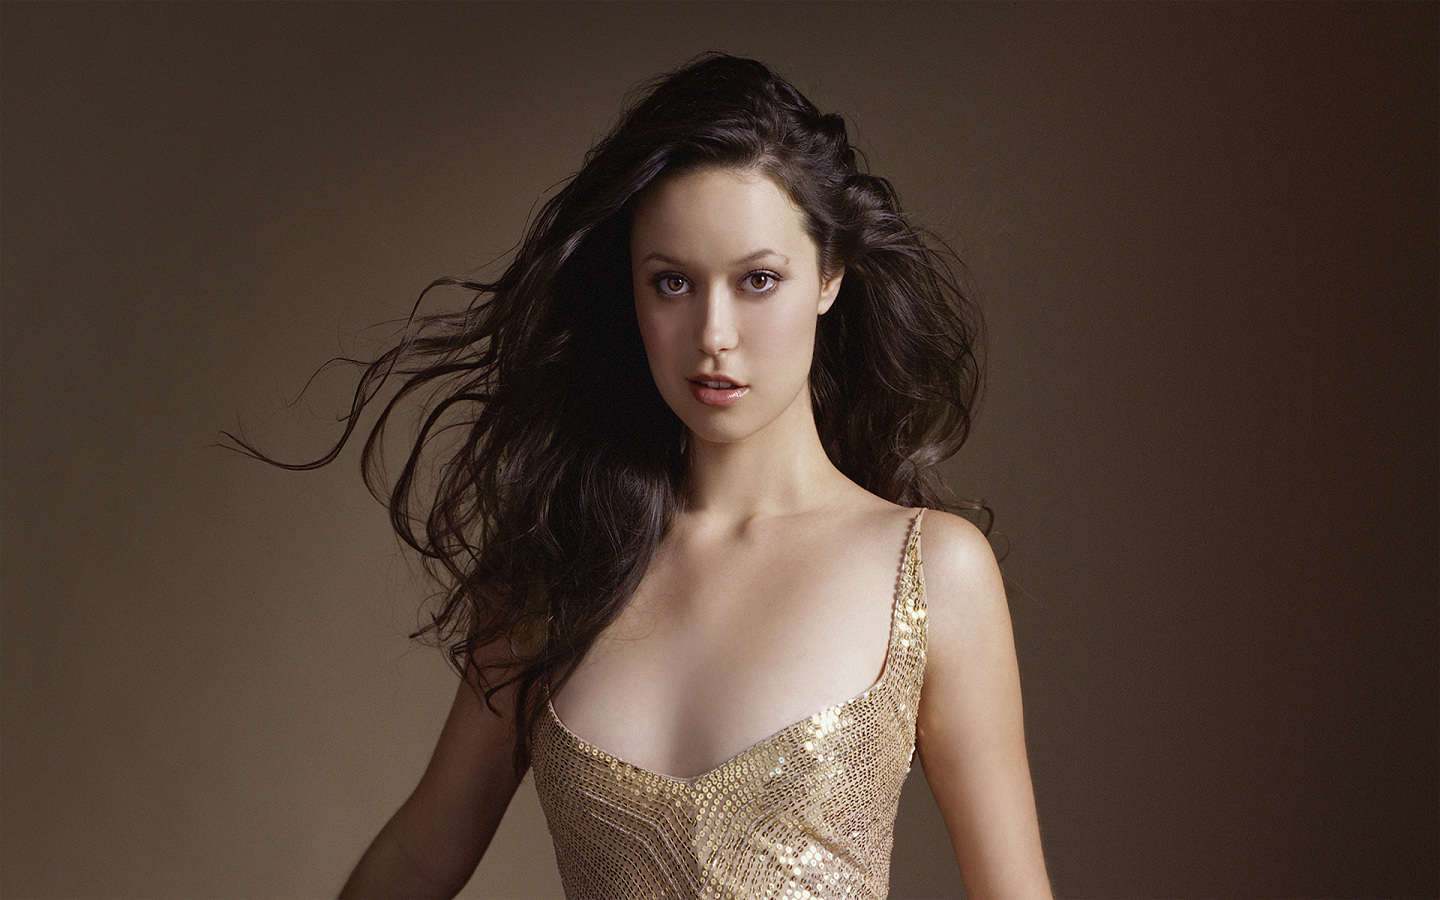 SUMMER GLAU_WALLSTOWN_IN_HOLLYWOOD ACTRESS_HOLLYWOOD CELEBRITIES